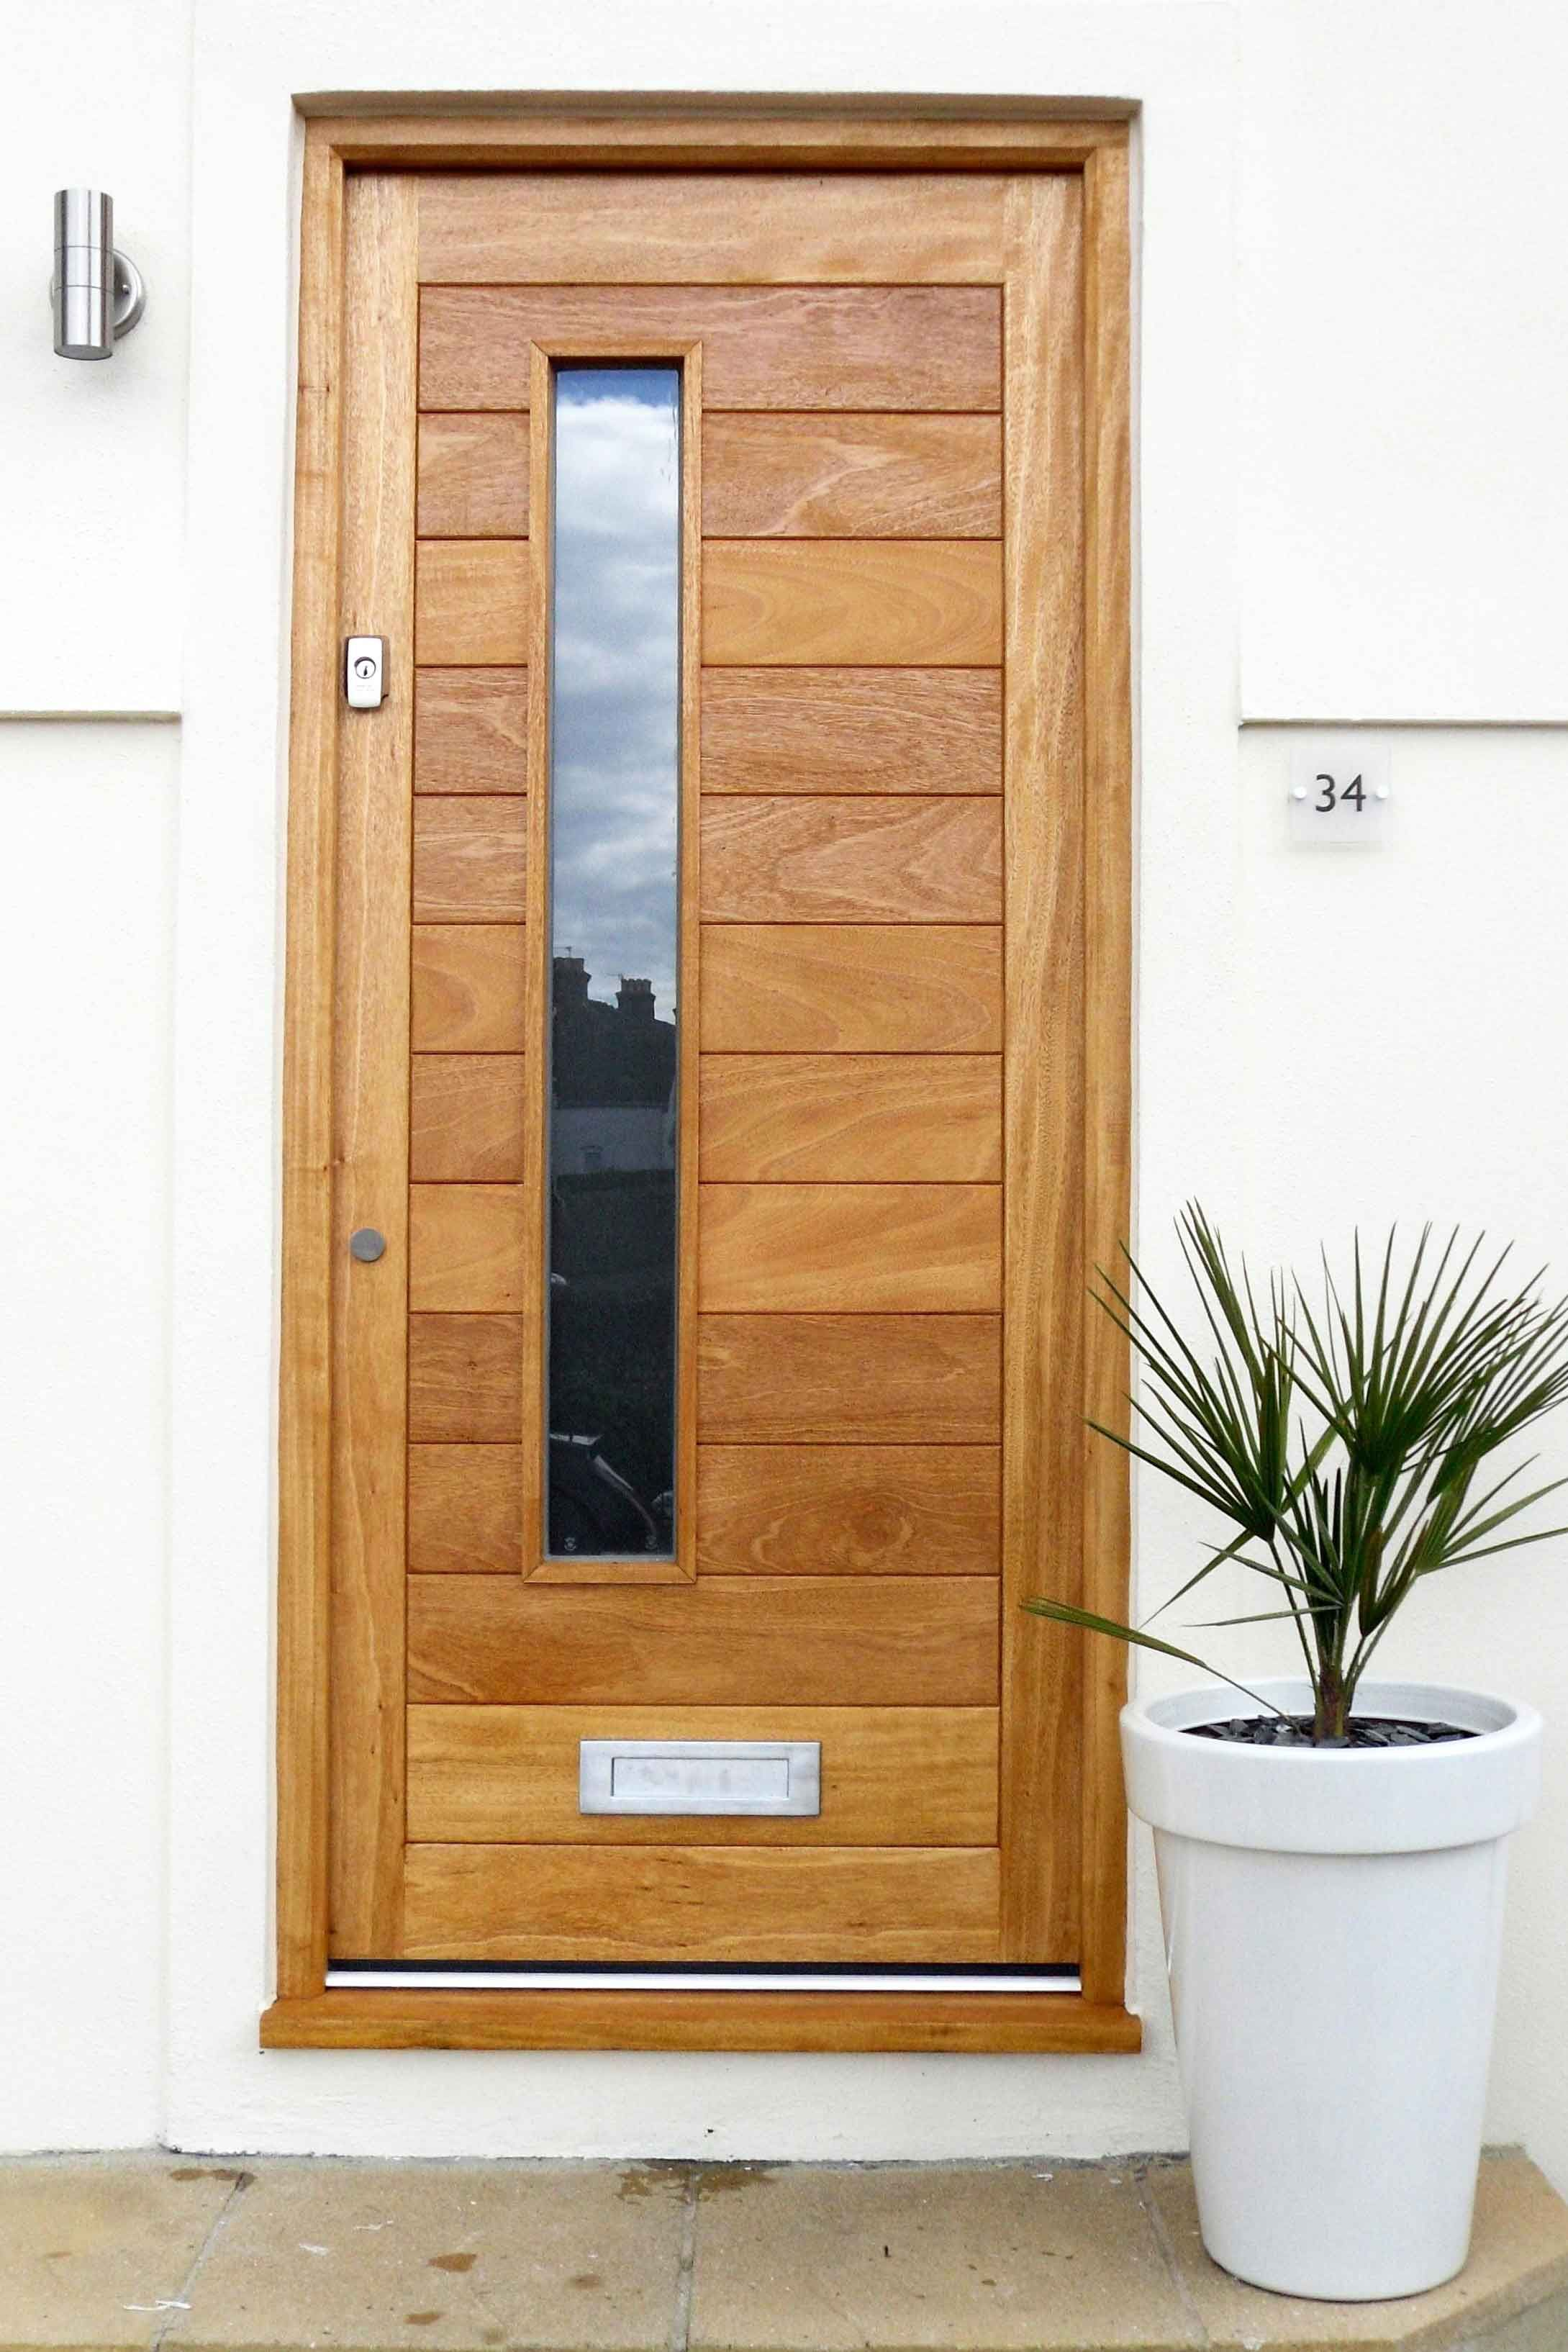 Interior Design Company Cheshire Lancashire Yorkshire Interior Design Companies Cool Doors Contemporary Doors